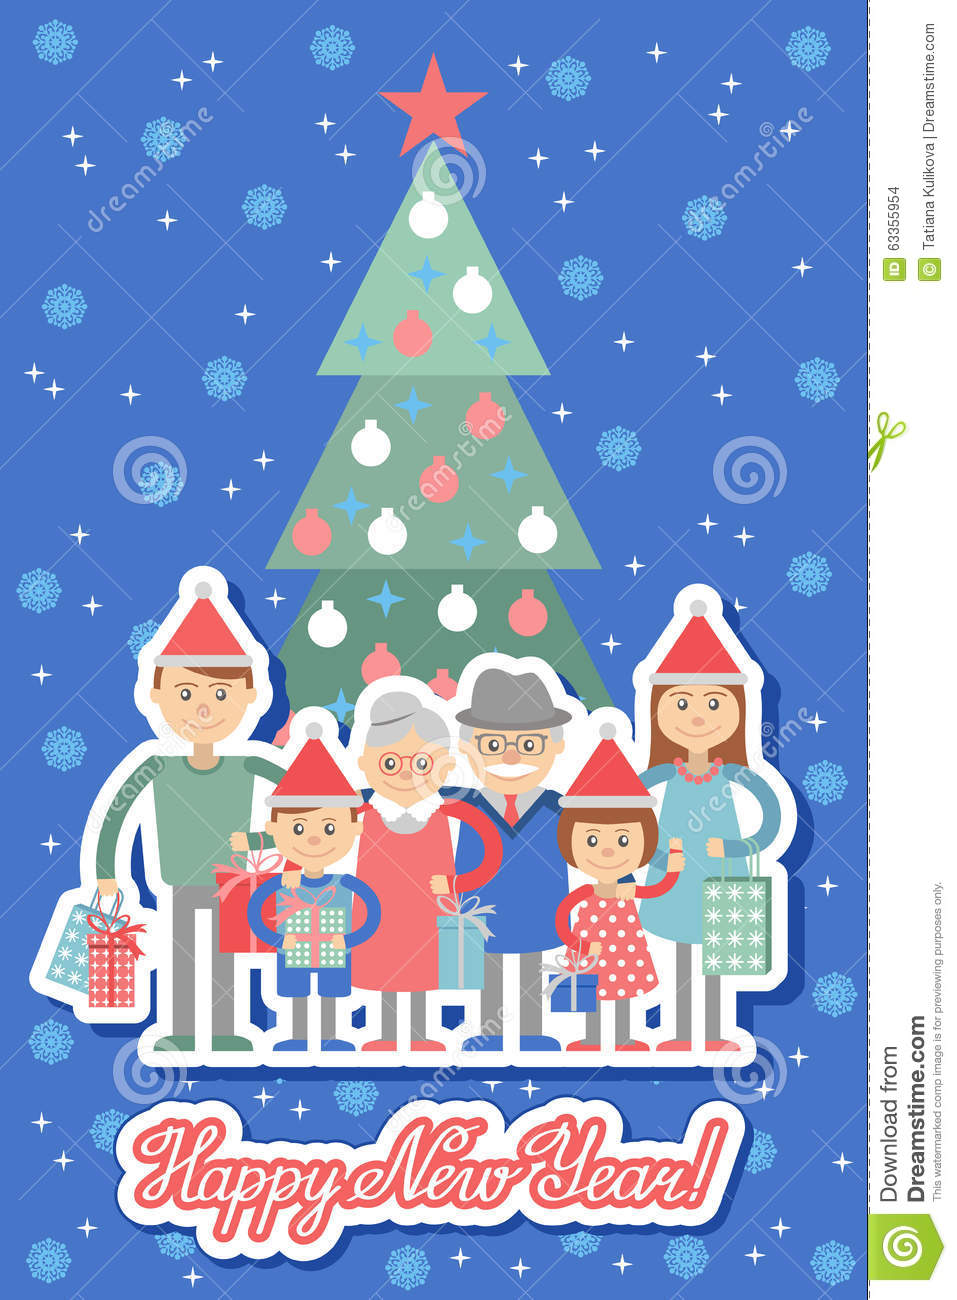 christmas gift exchange ideas for large families - Christmas Gift Exchange Ideas For Large Families